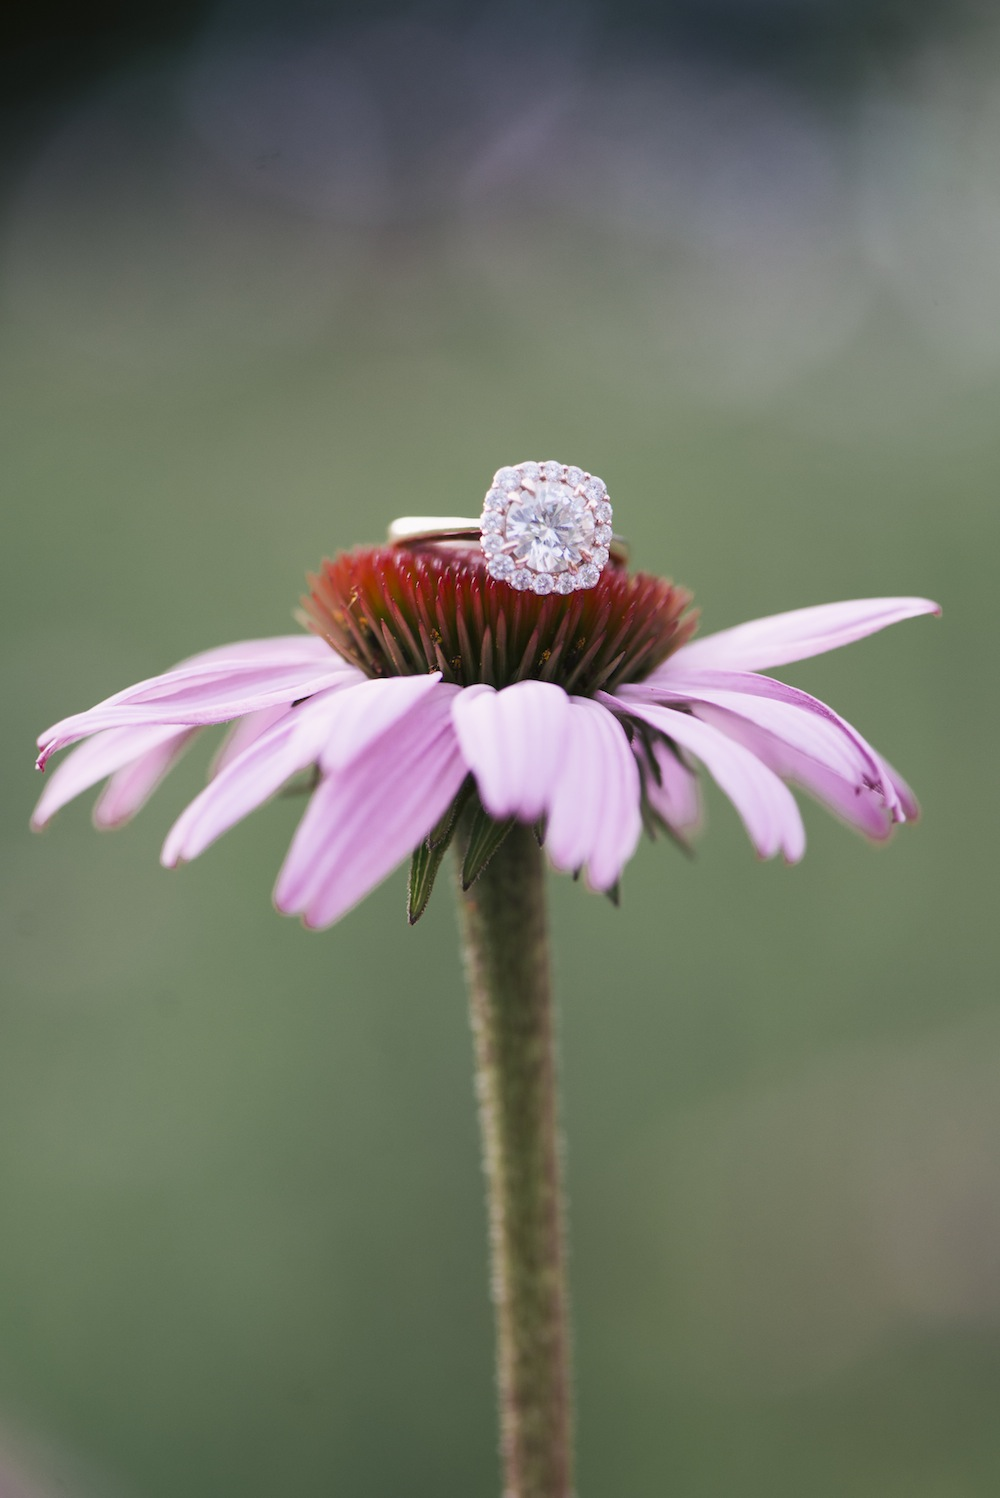 EngagementRings_WeddingRings_BrittanyBekasPhotography_BrittanyBekasPhotography7_0